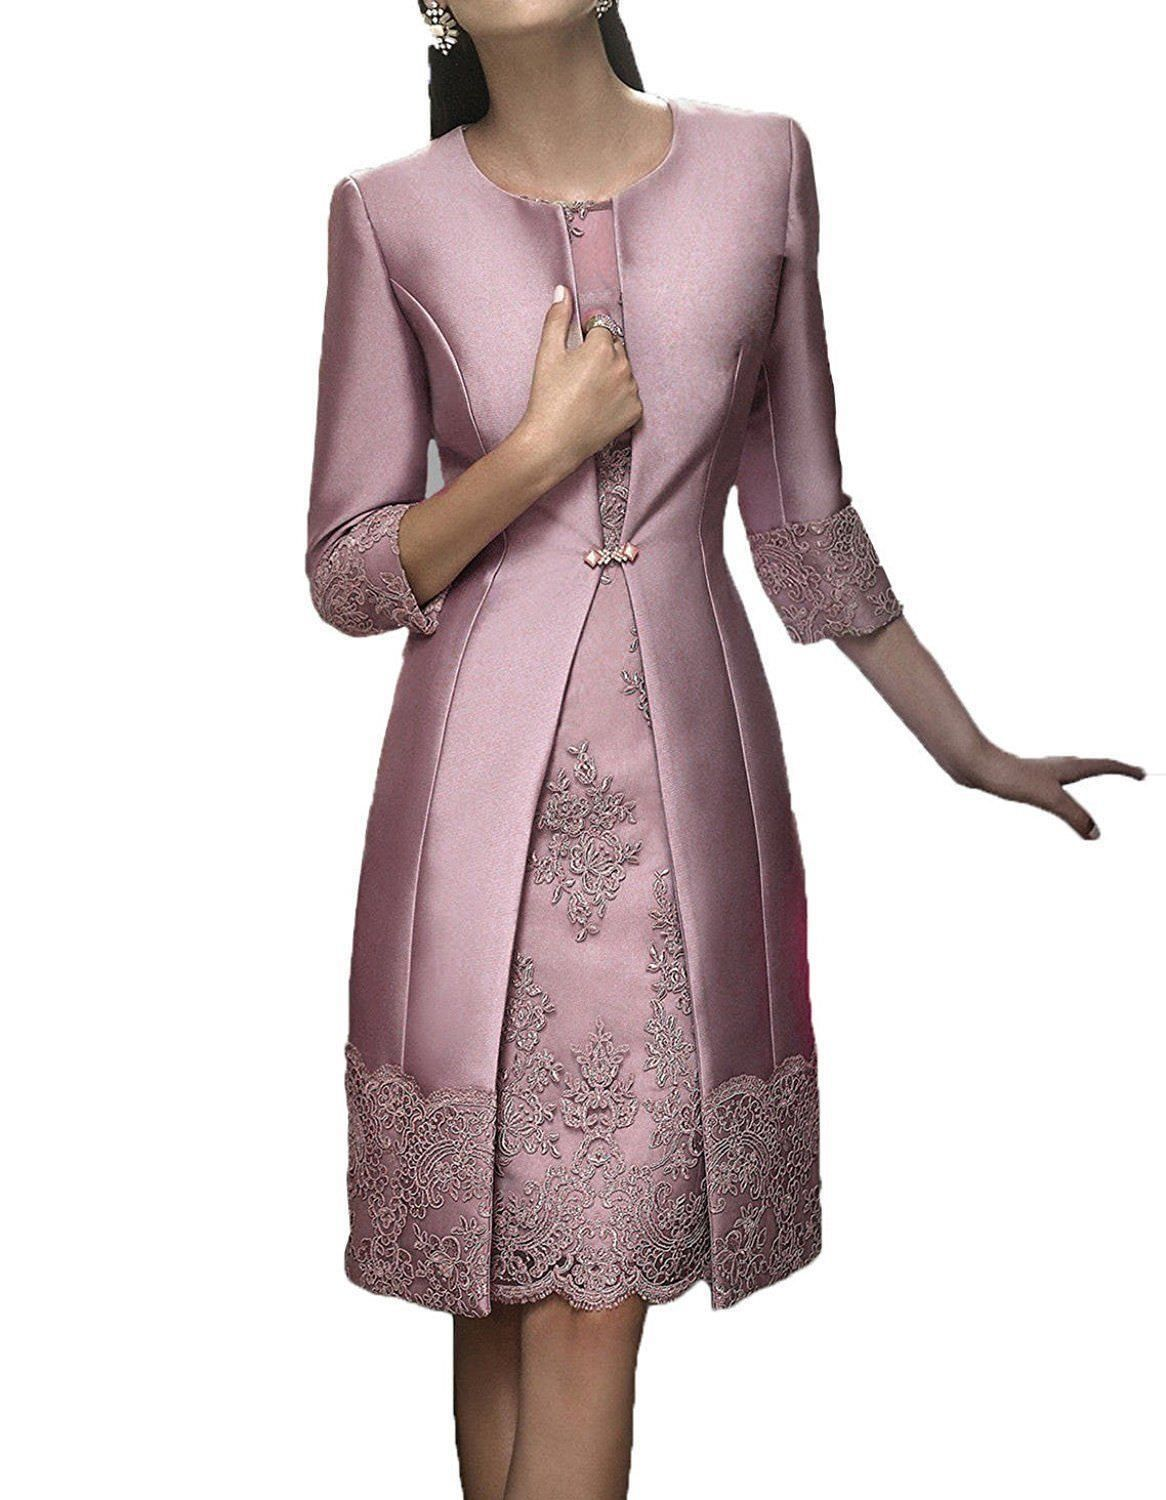 Wedding dress and jacket for guest   Knee Length Mother of the Bride Dress Jacket Lace Satin Wedding